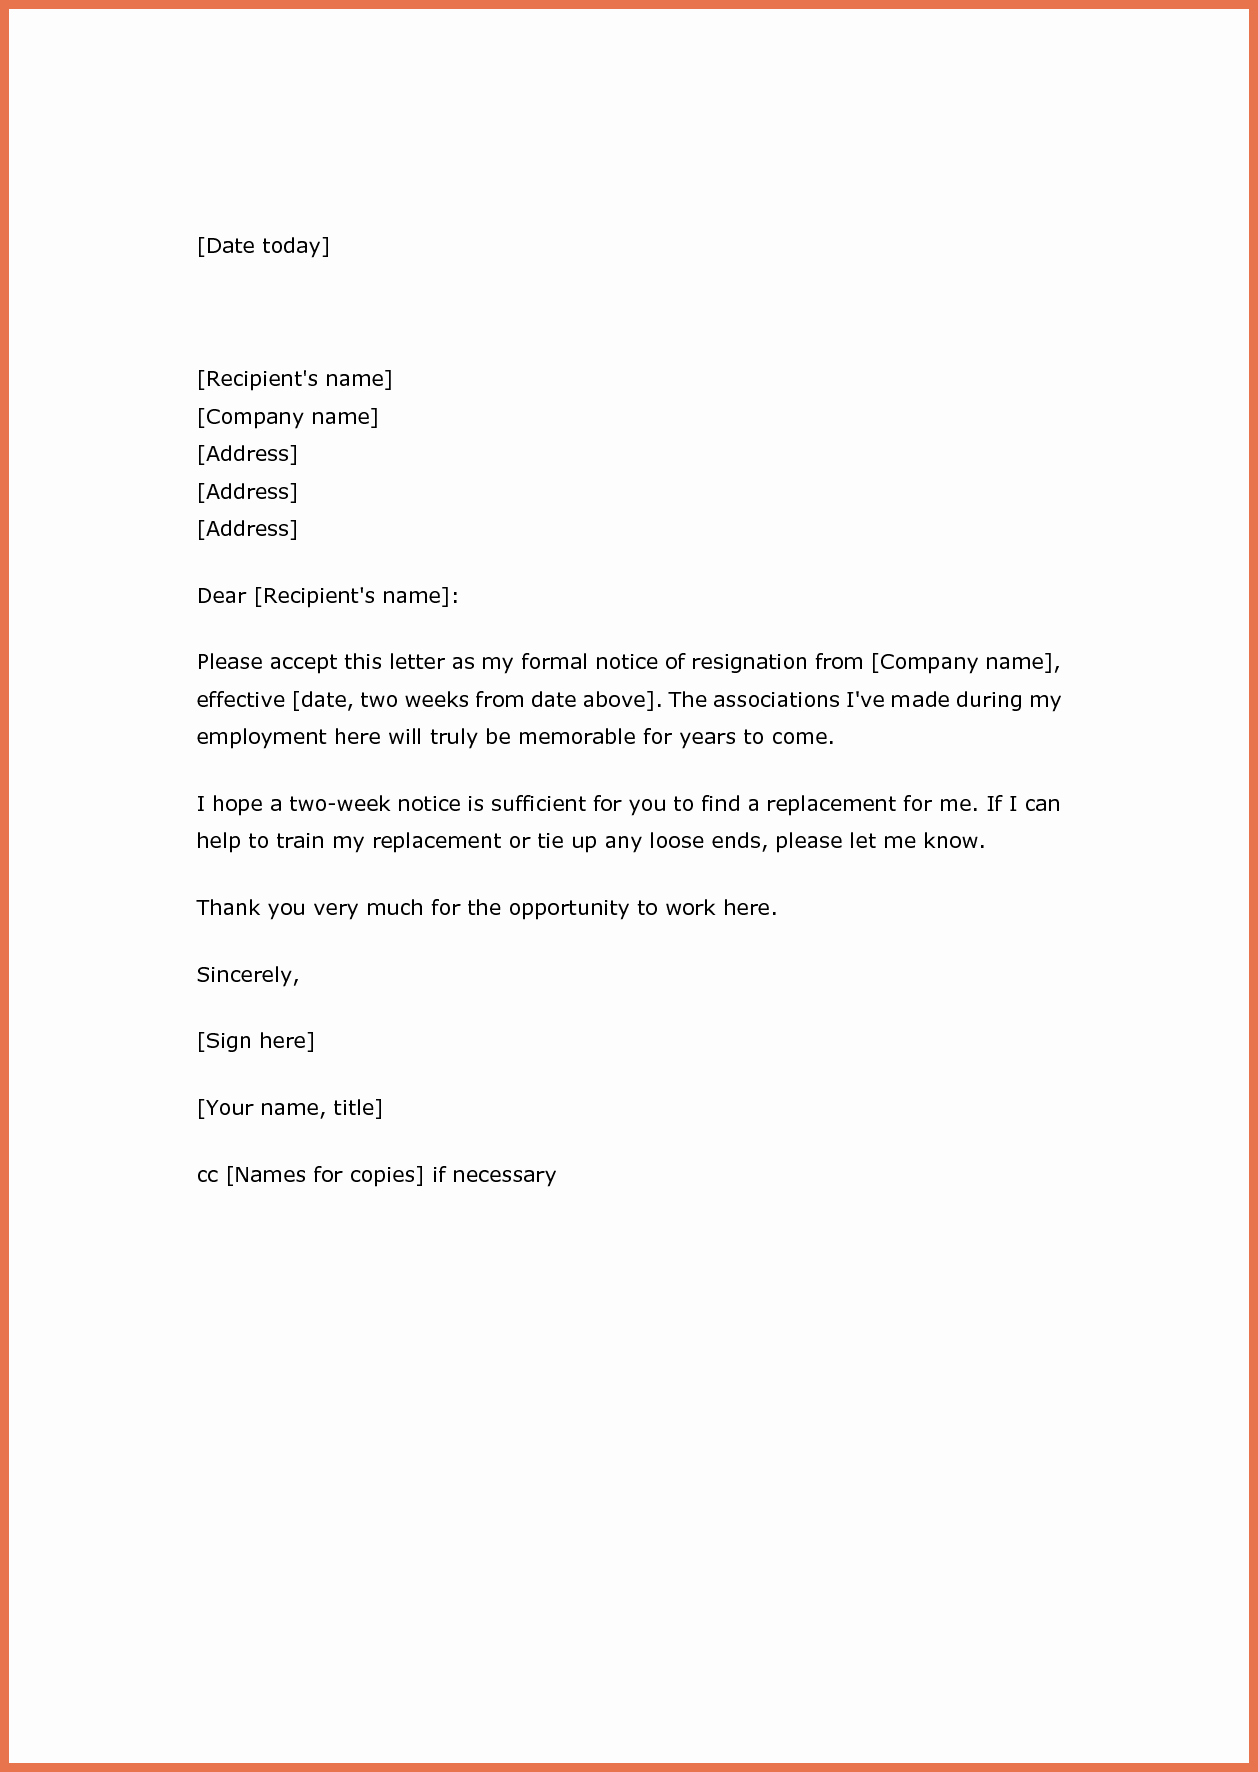 Two Weeks Notice Letter Sample Awesome Two Weeks' Notice Resignation Letter Samples